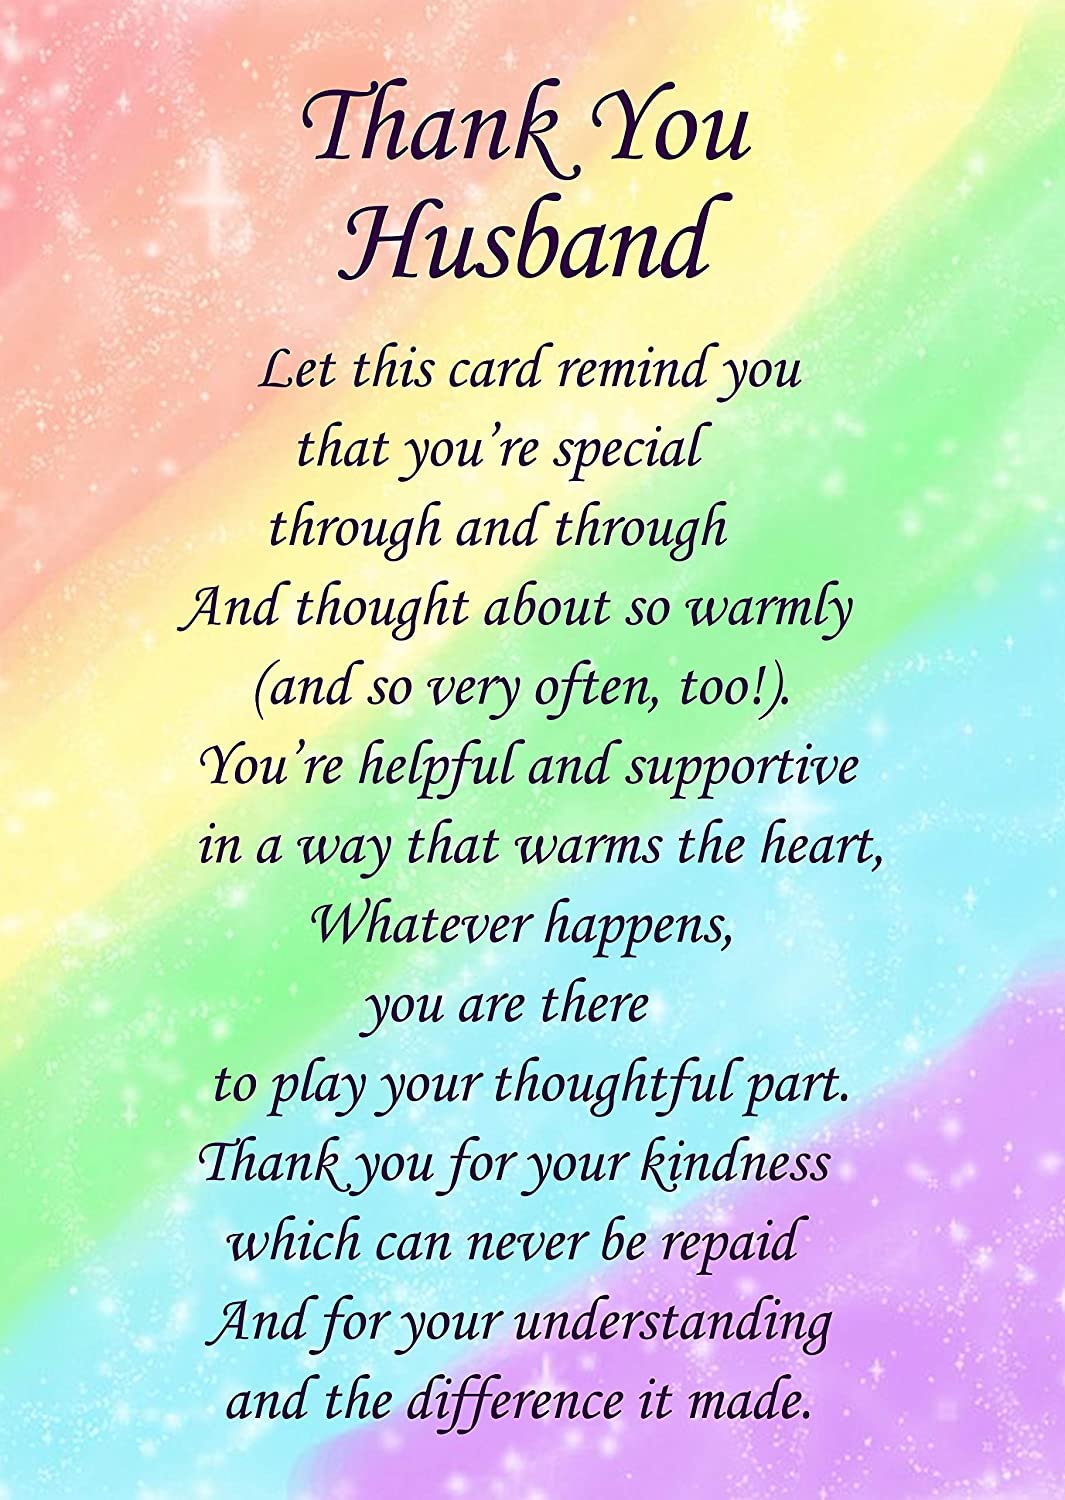 Love and appreciation poems for husband   Thank You Poems